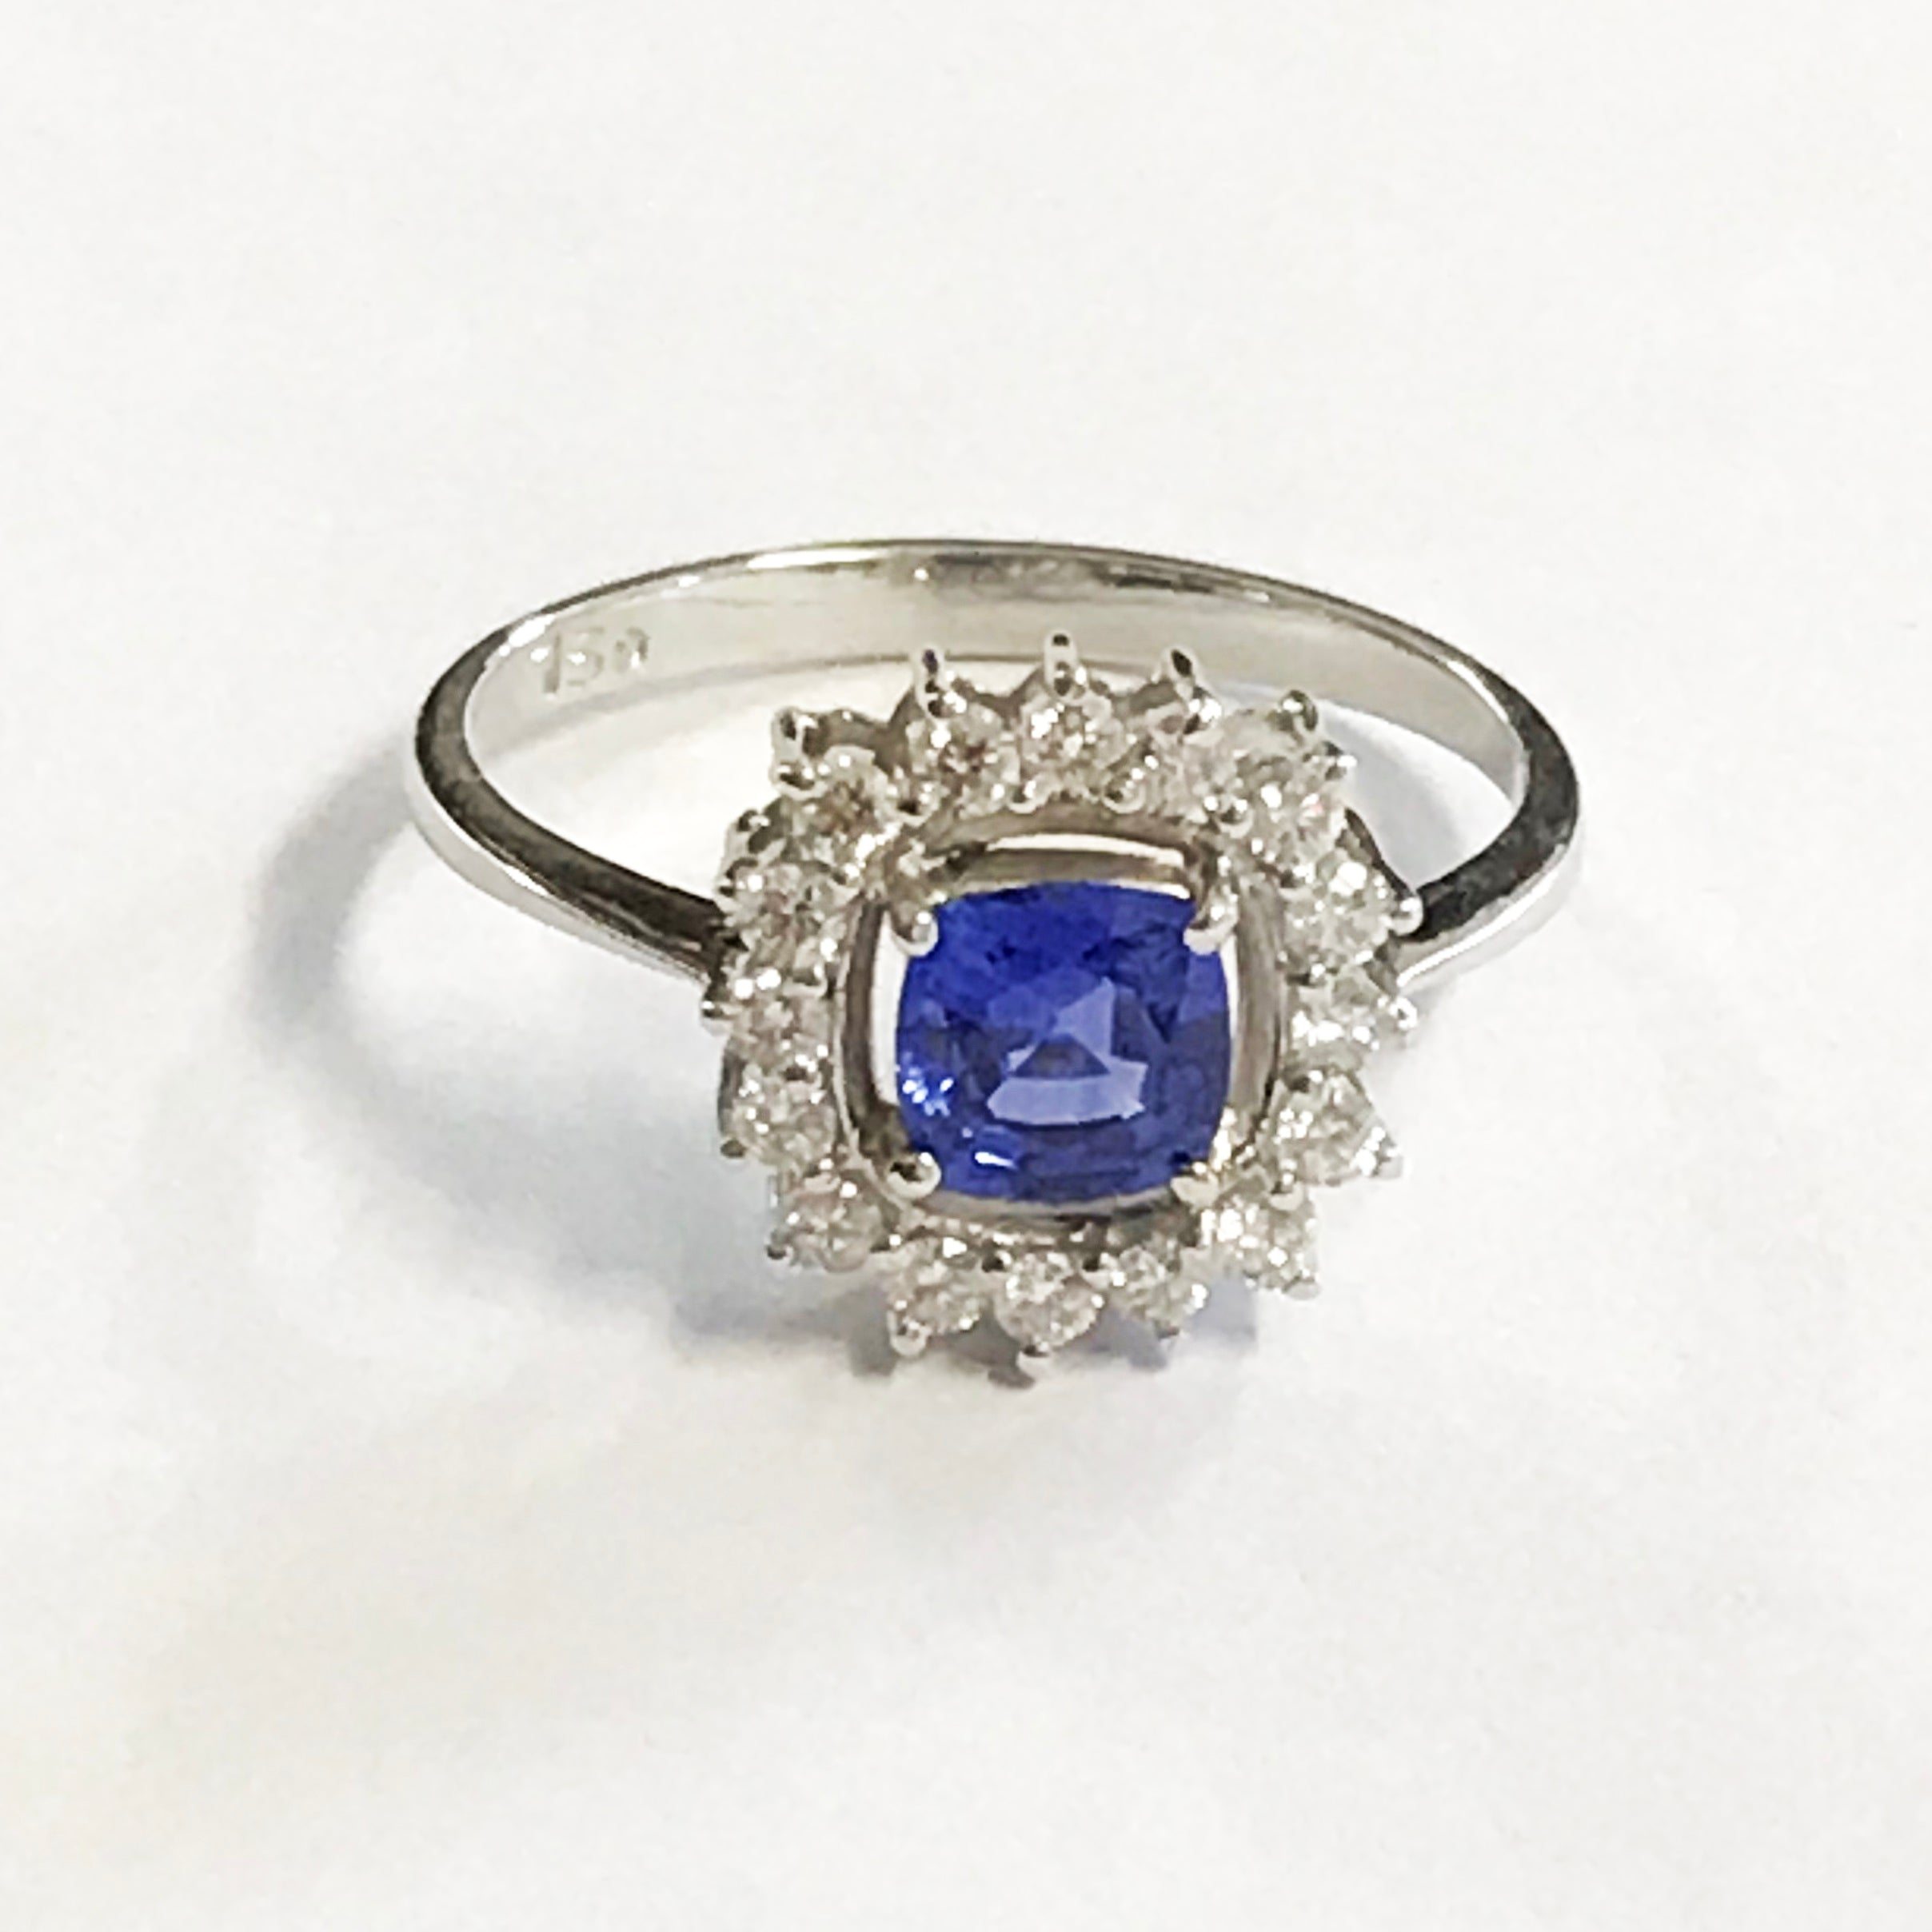 yellow her ring diana il anniversary blue ct with sapphire listing for diamond rings gold engagement fullxfull